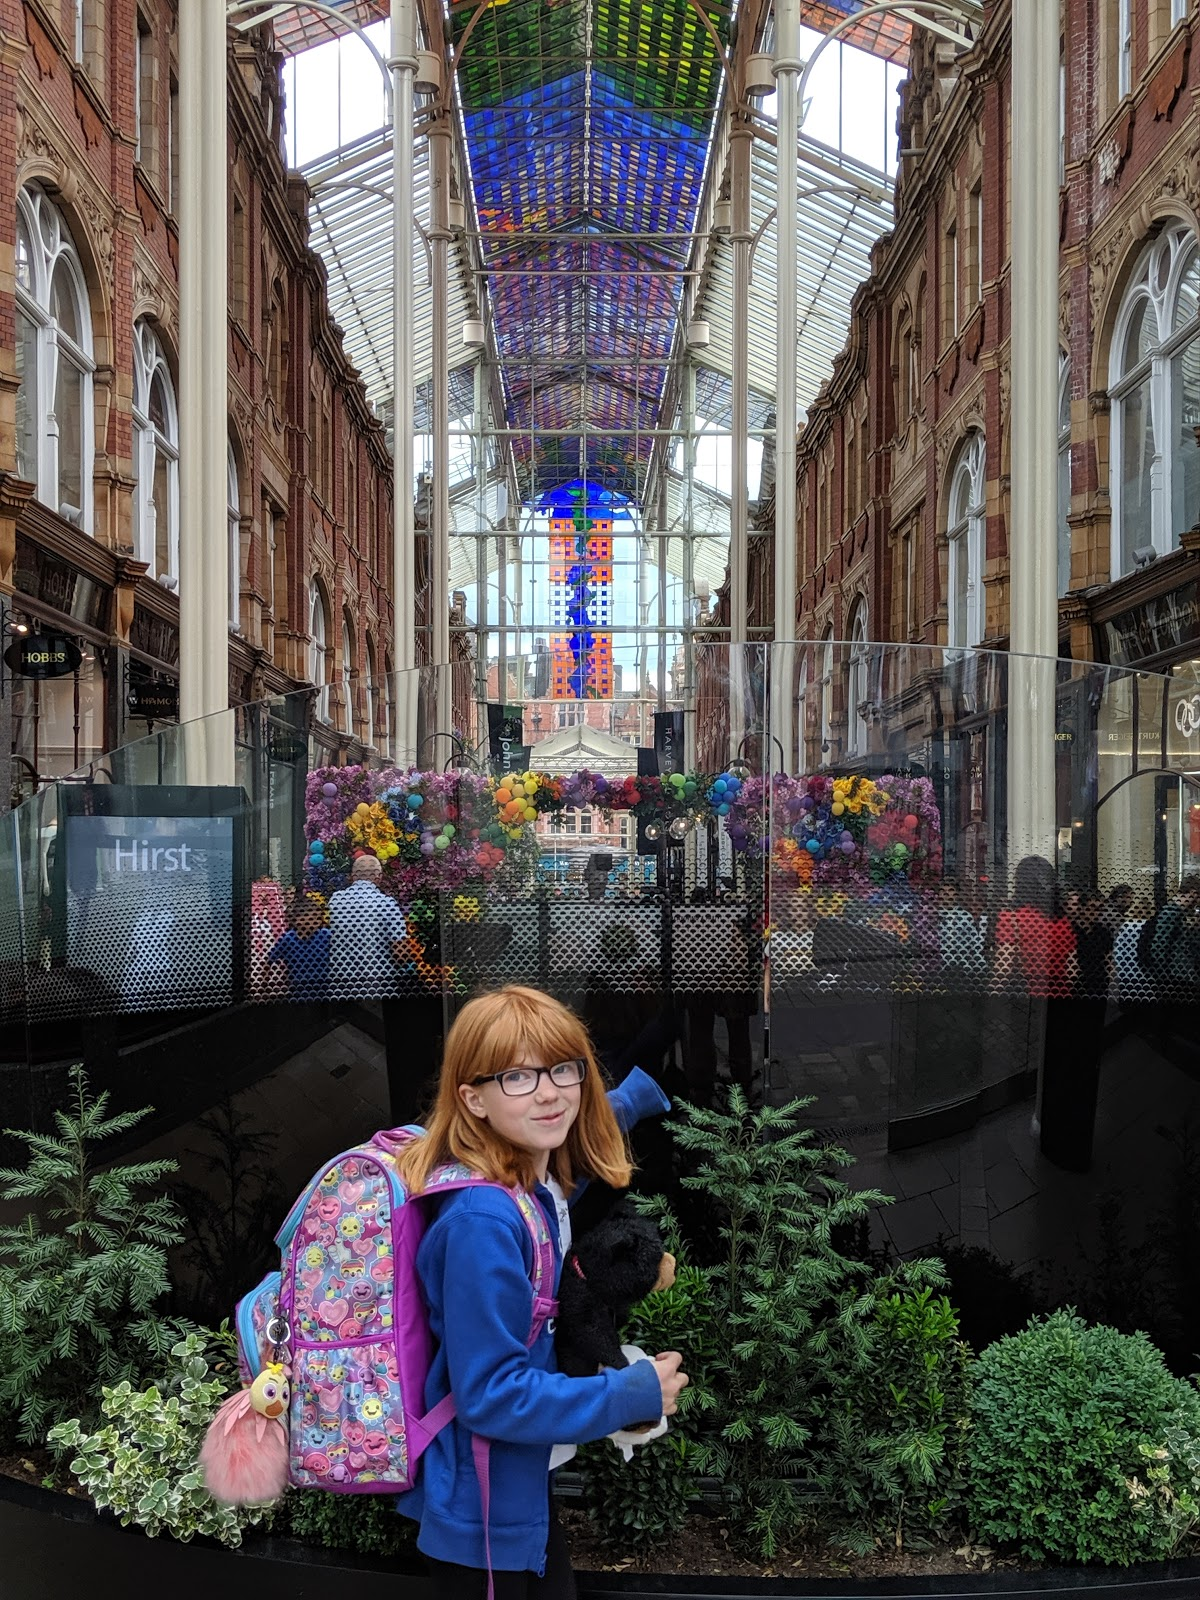 A Short Break in Leeds with Holidays by National Express  - Leeds shopping arcade